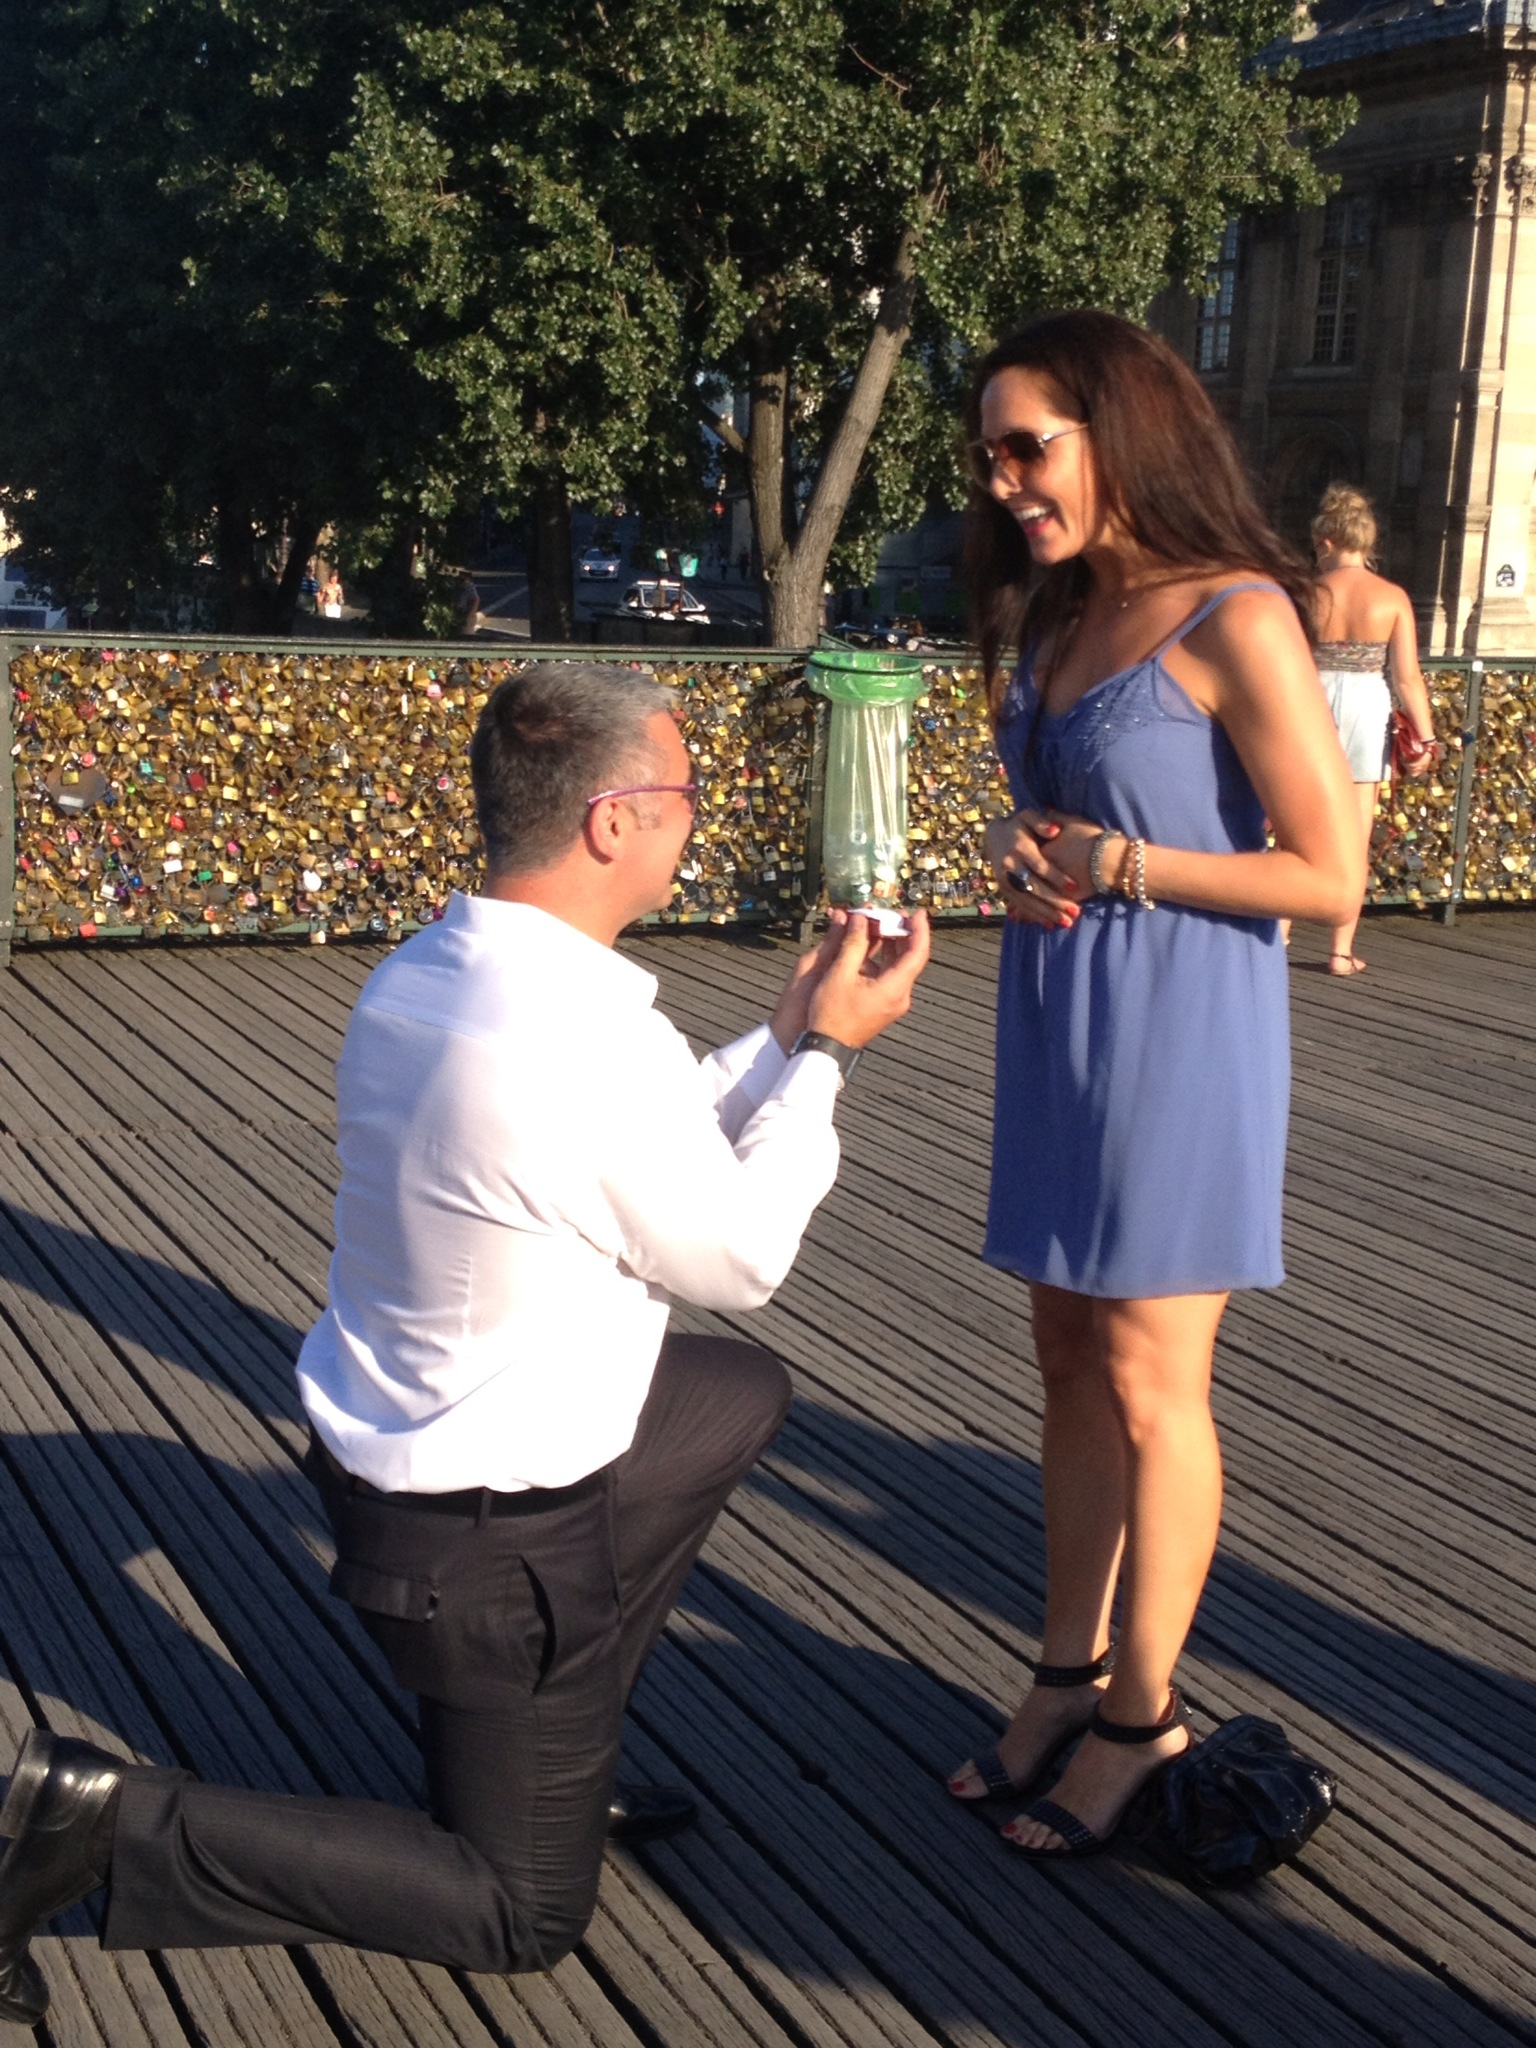 Image 5 of Erica and Doug | Proposal in Paris